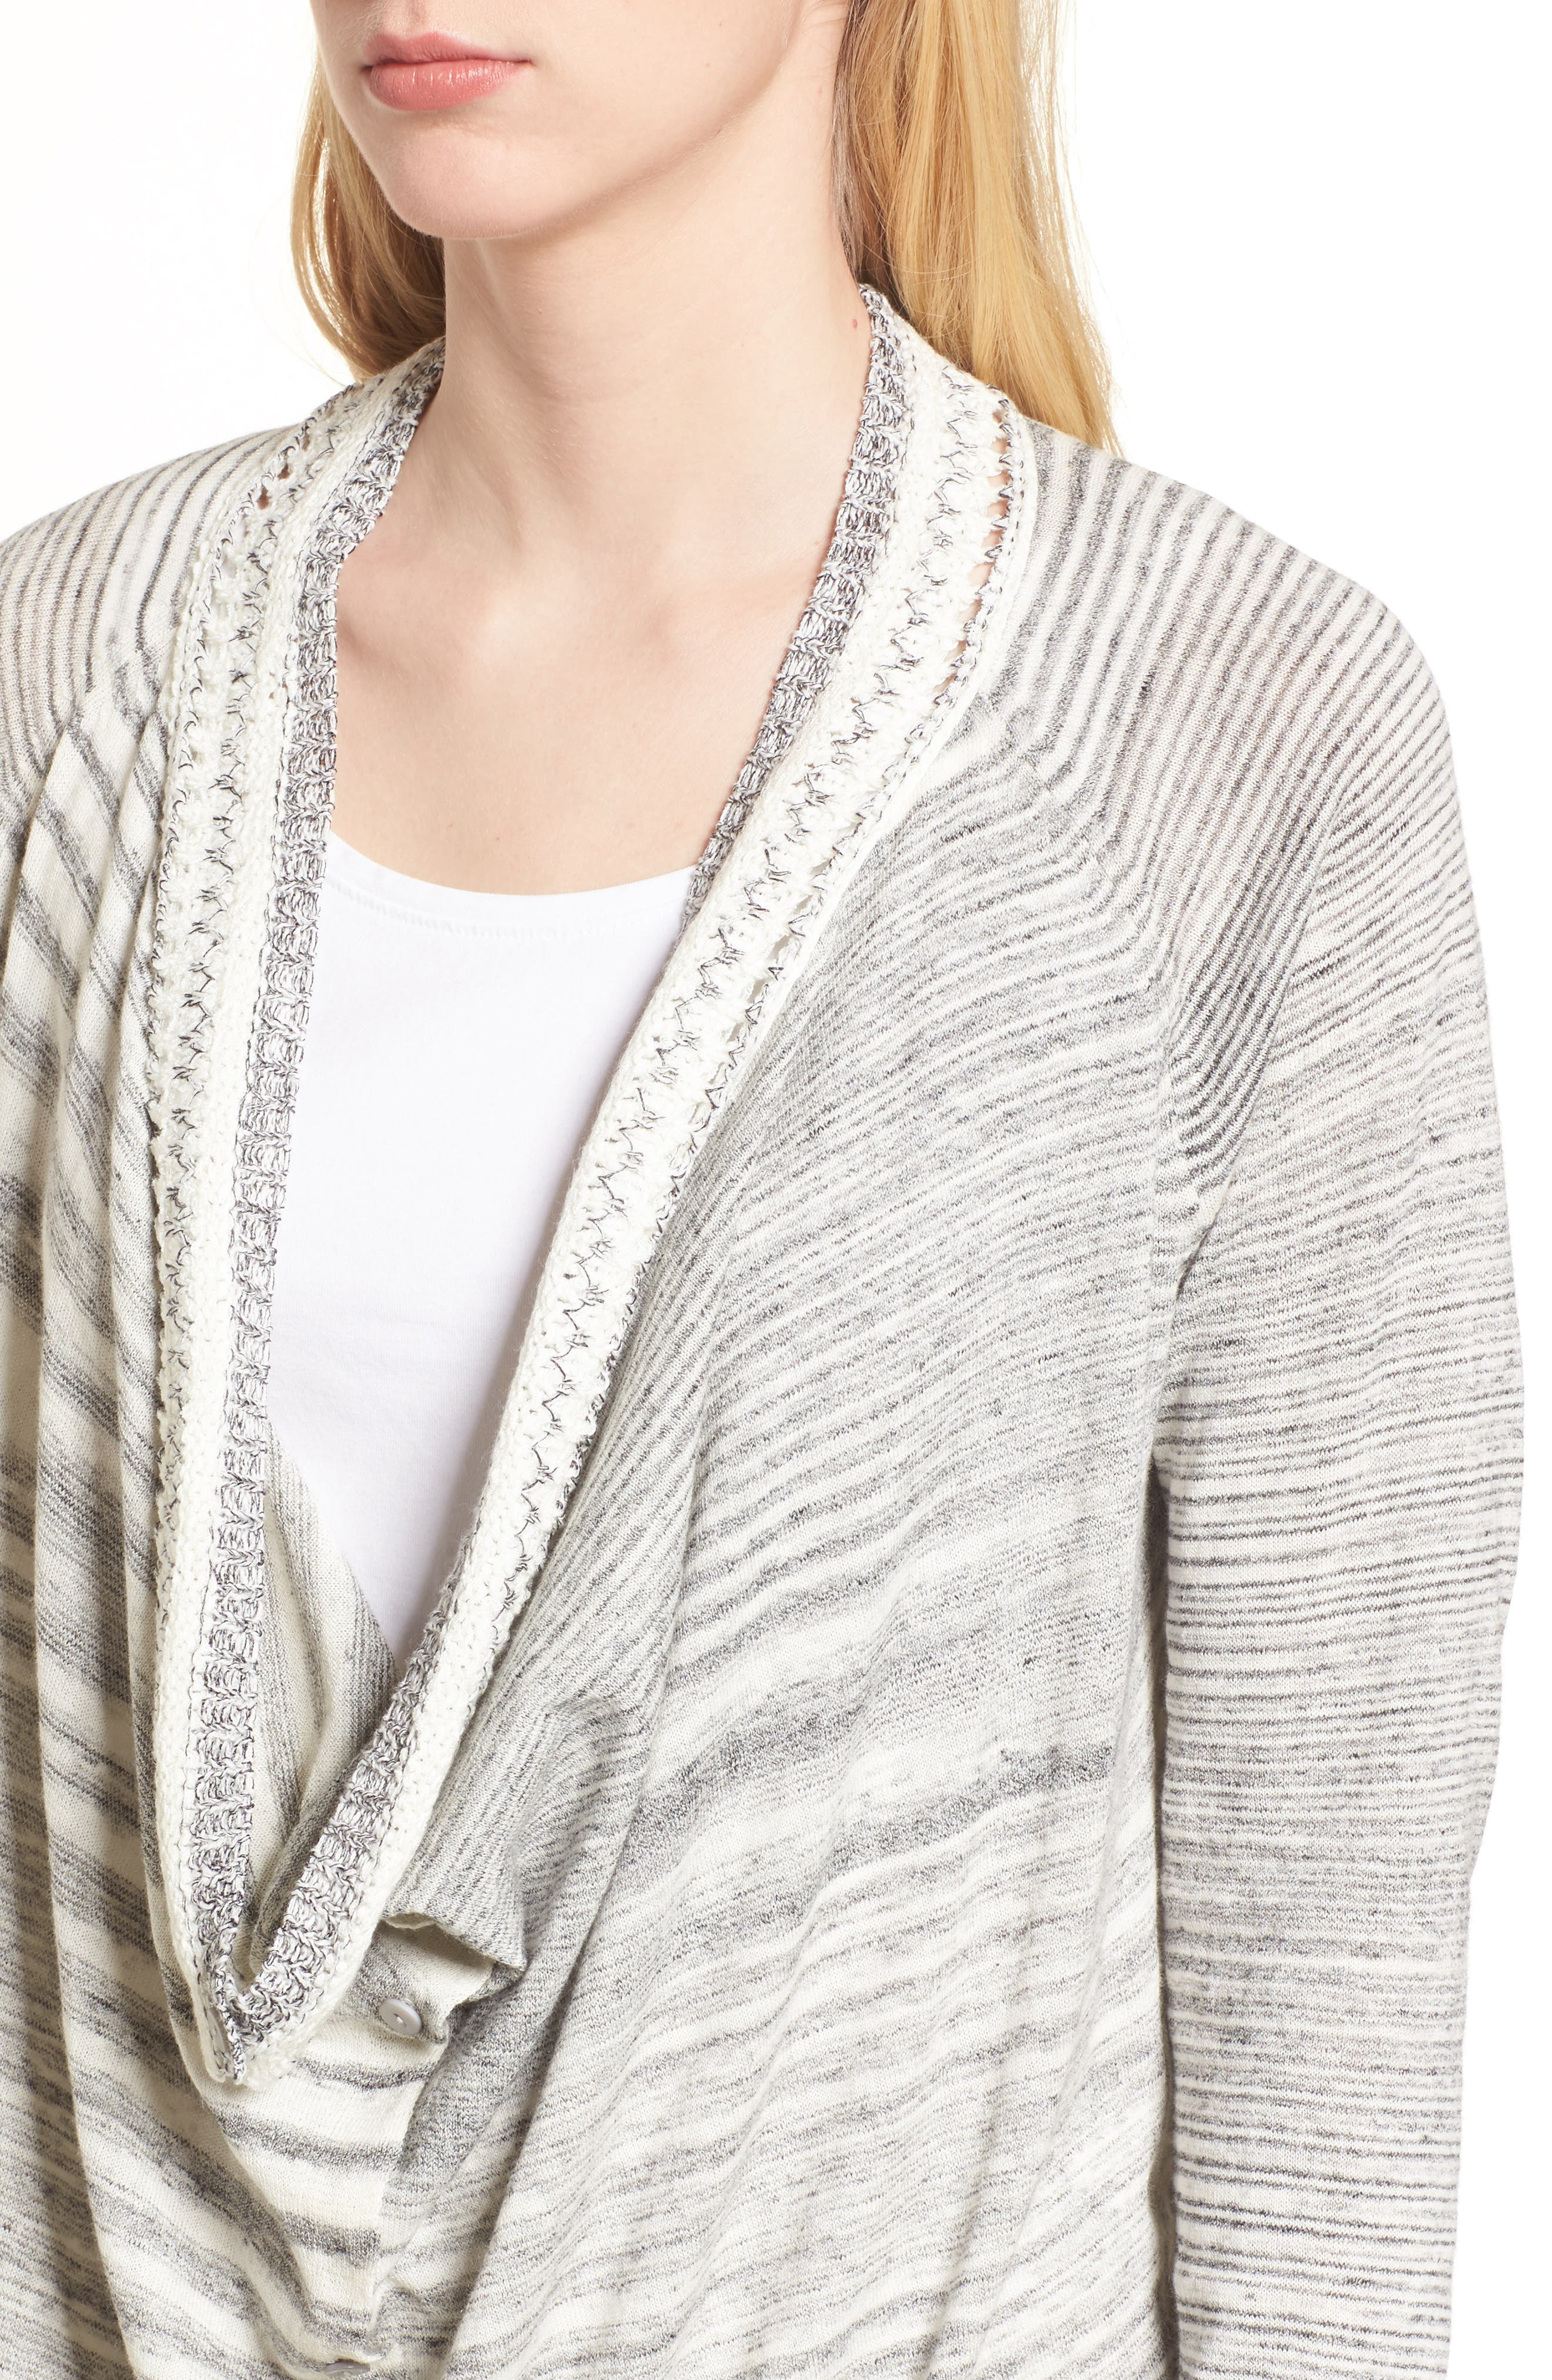 NIC + ZOE Time Change Cowl Neck Cardigan,                             Alternate thumbnail 4, color,                             050